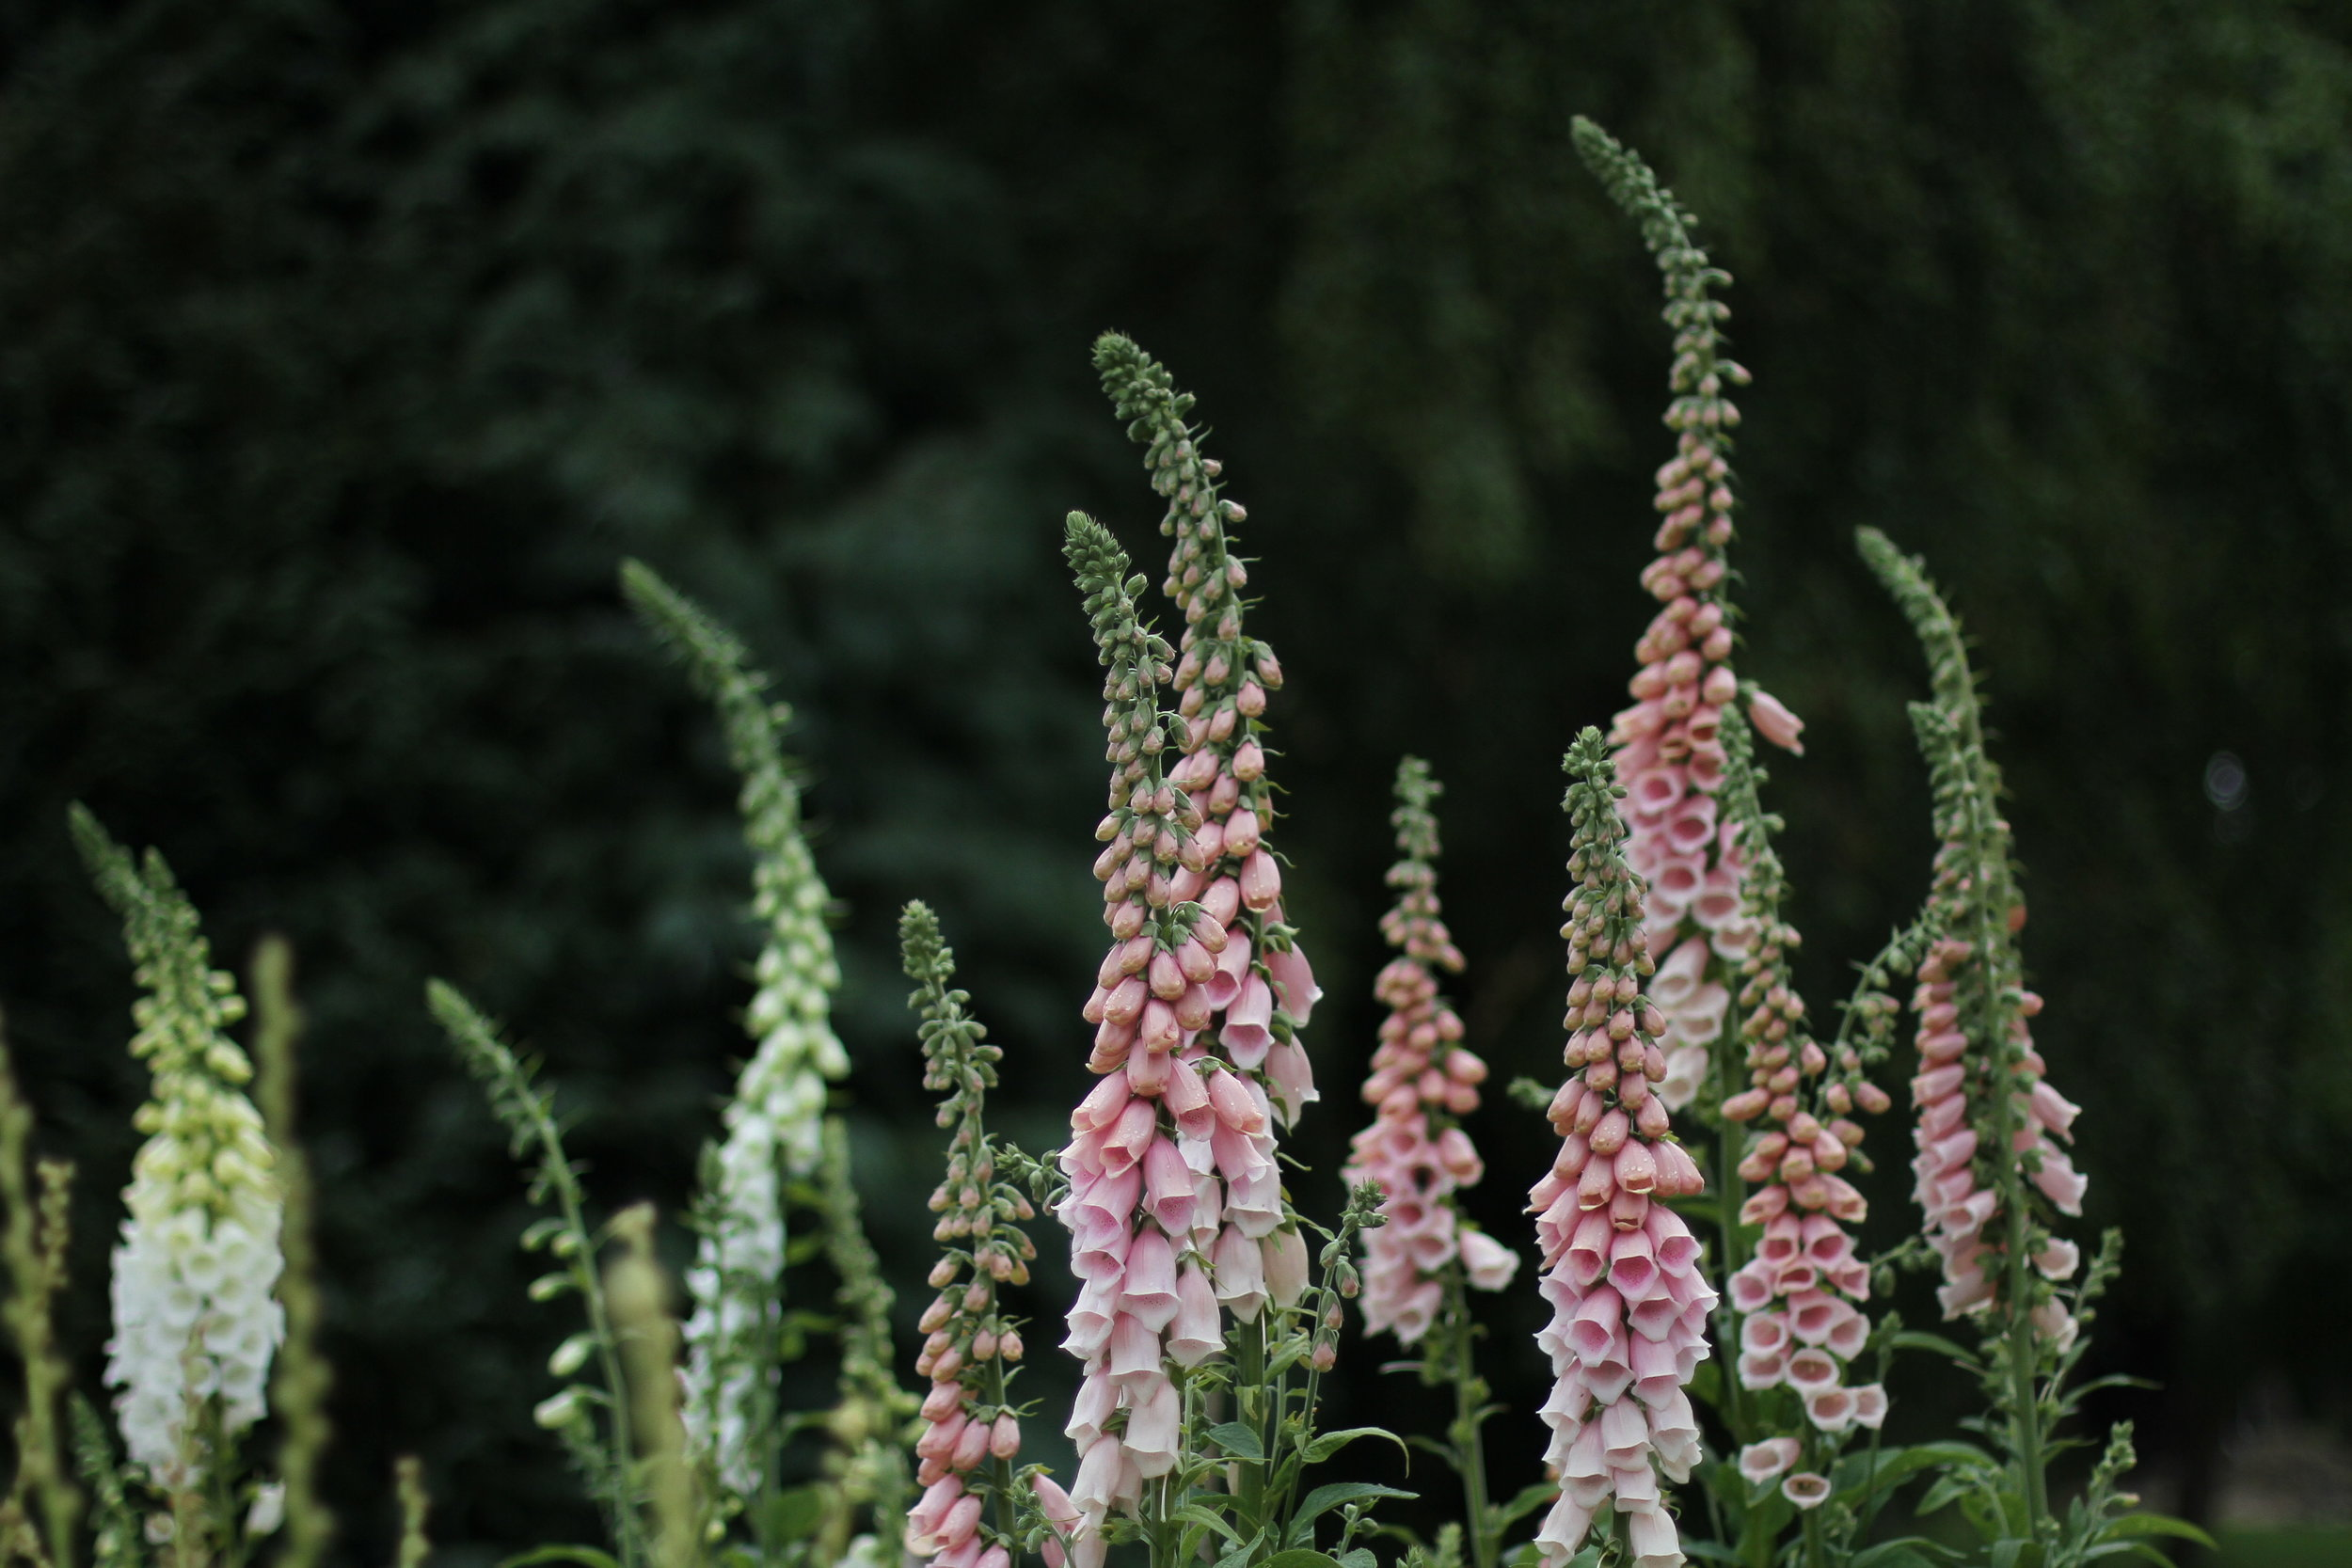 Foxgloves, photograph by Clare Nolan from her book In Bloom